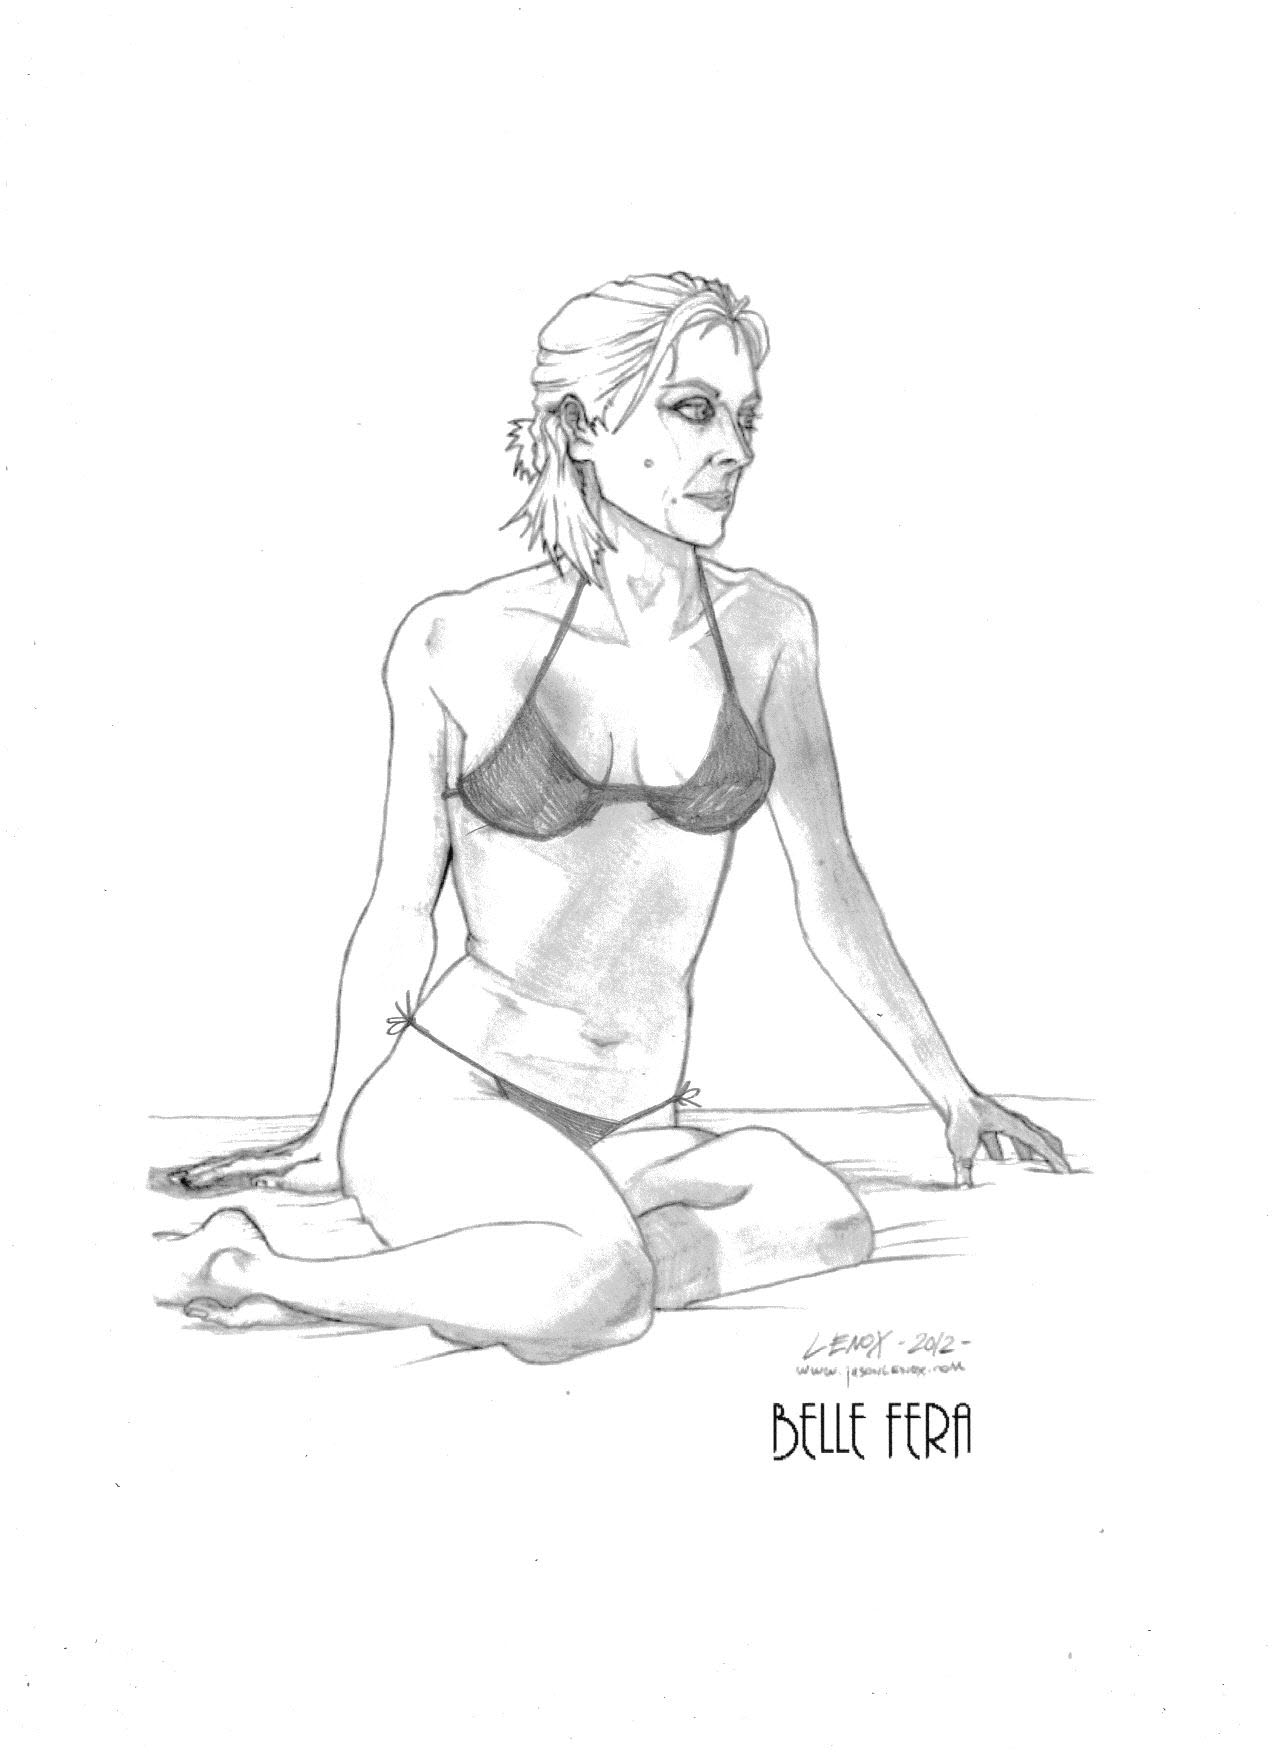 Belle fera models pencil drawing from figure modeling